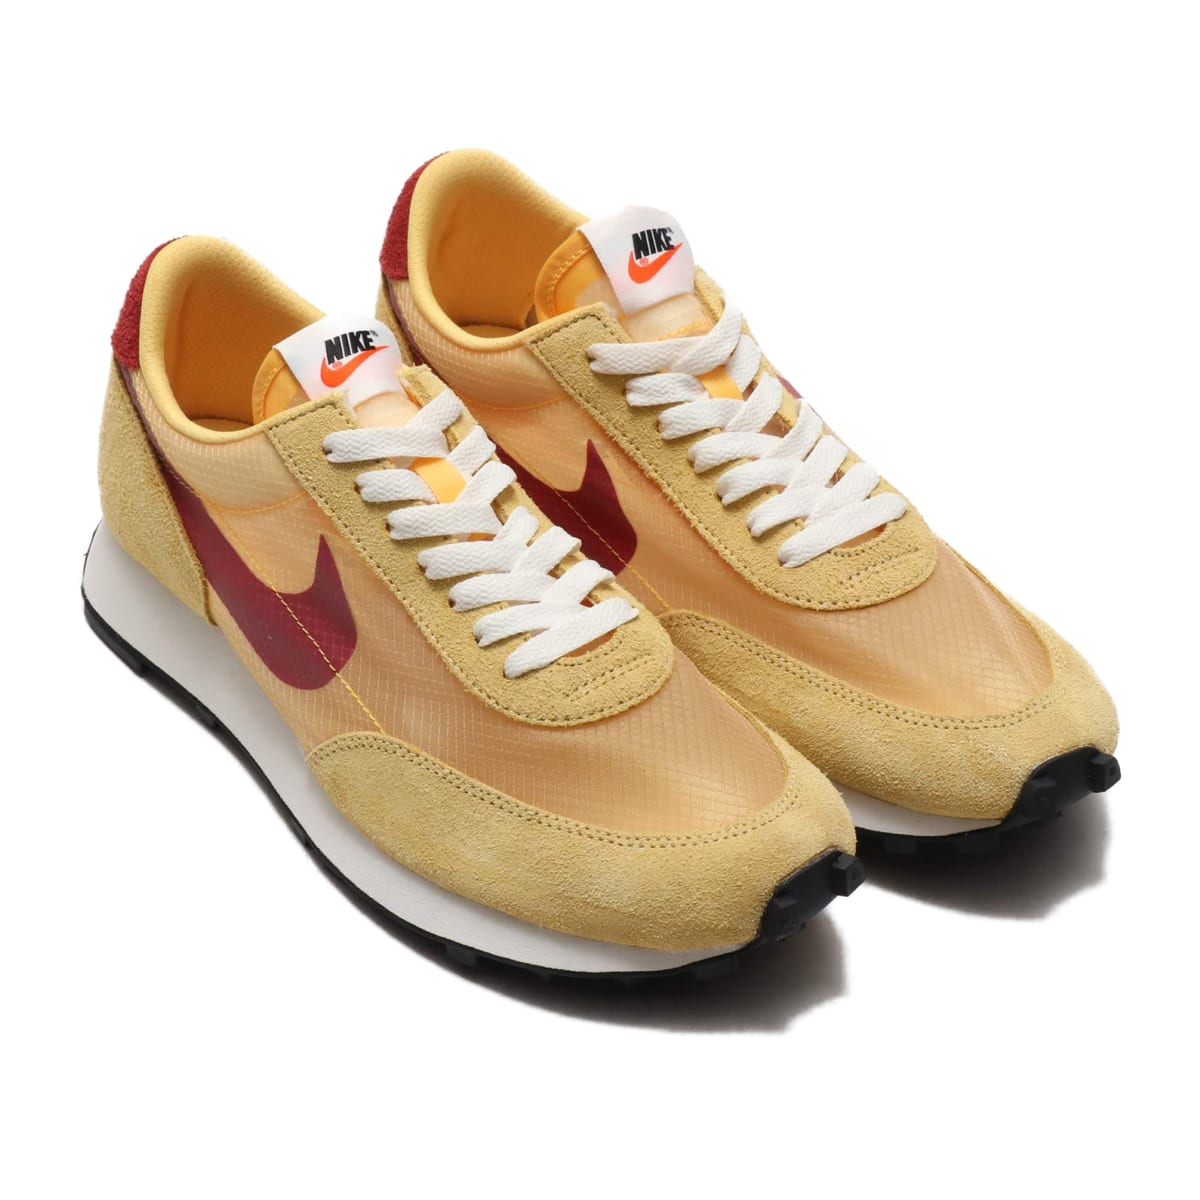 NIKE DBREAK SP TOPAZ GOLD/CEDAR-LEMON WASH-SUMMIT WHITE 20SU-S_photo_large